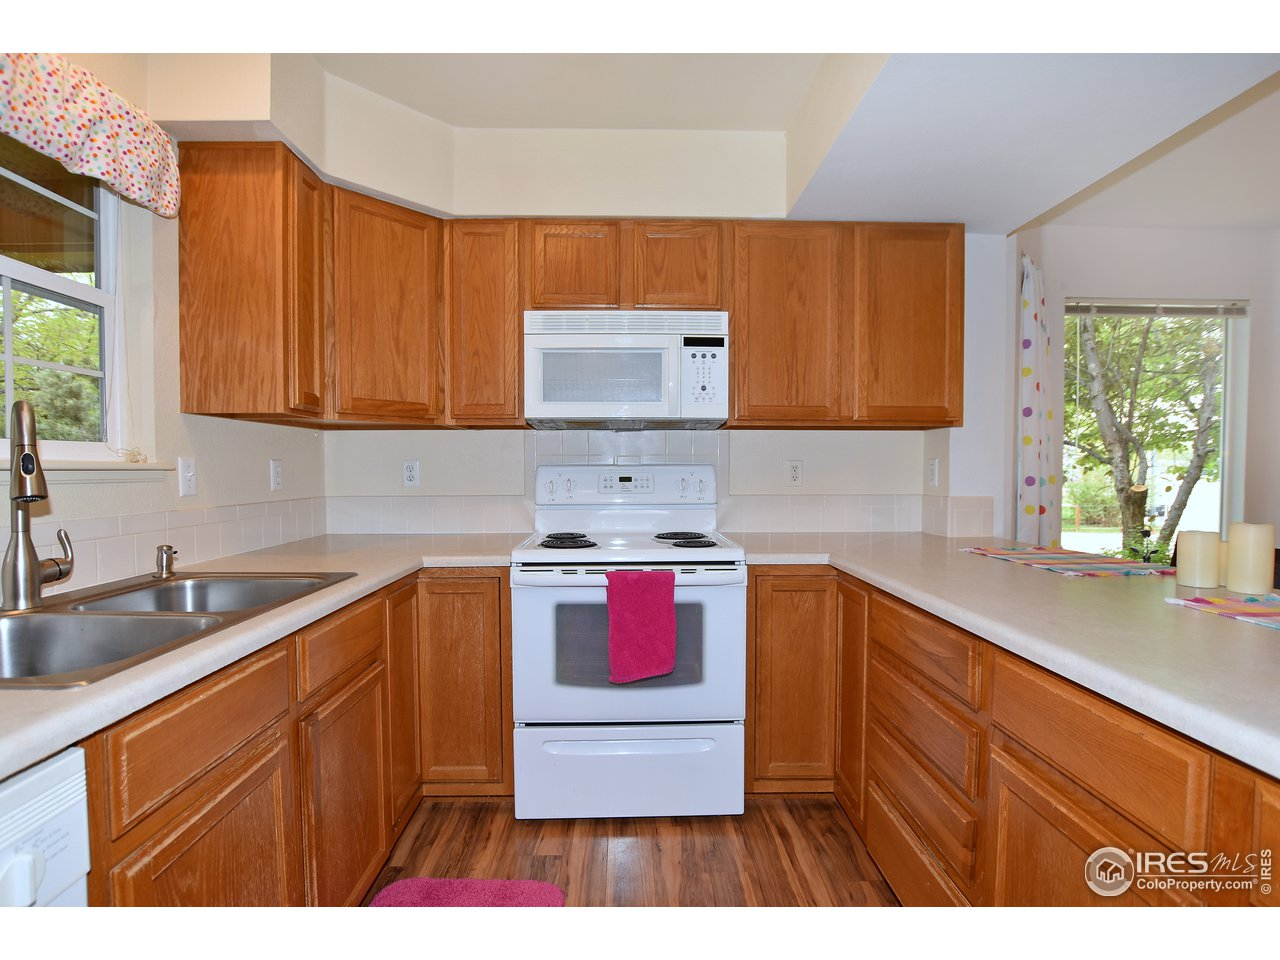 Kitchen with ample storage.